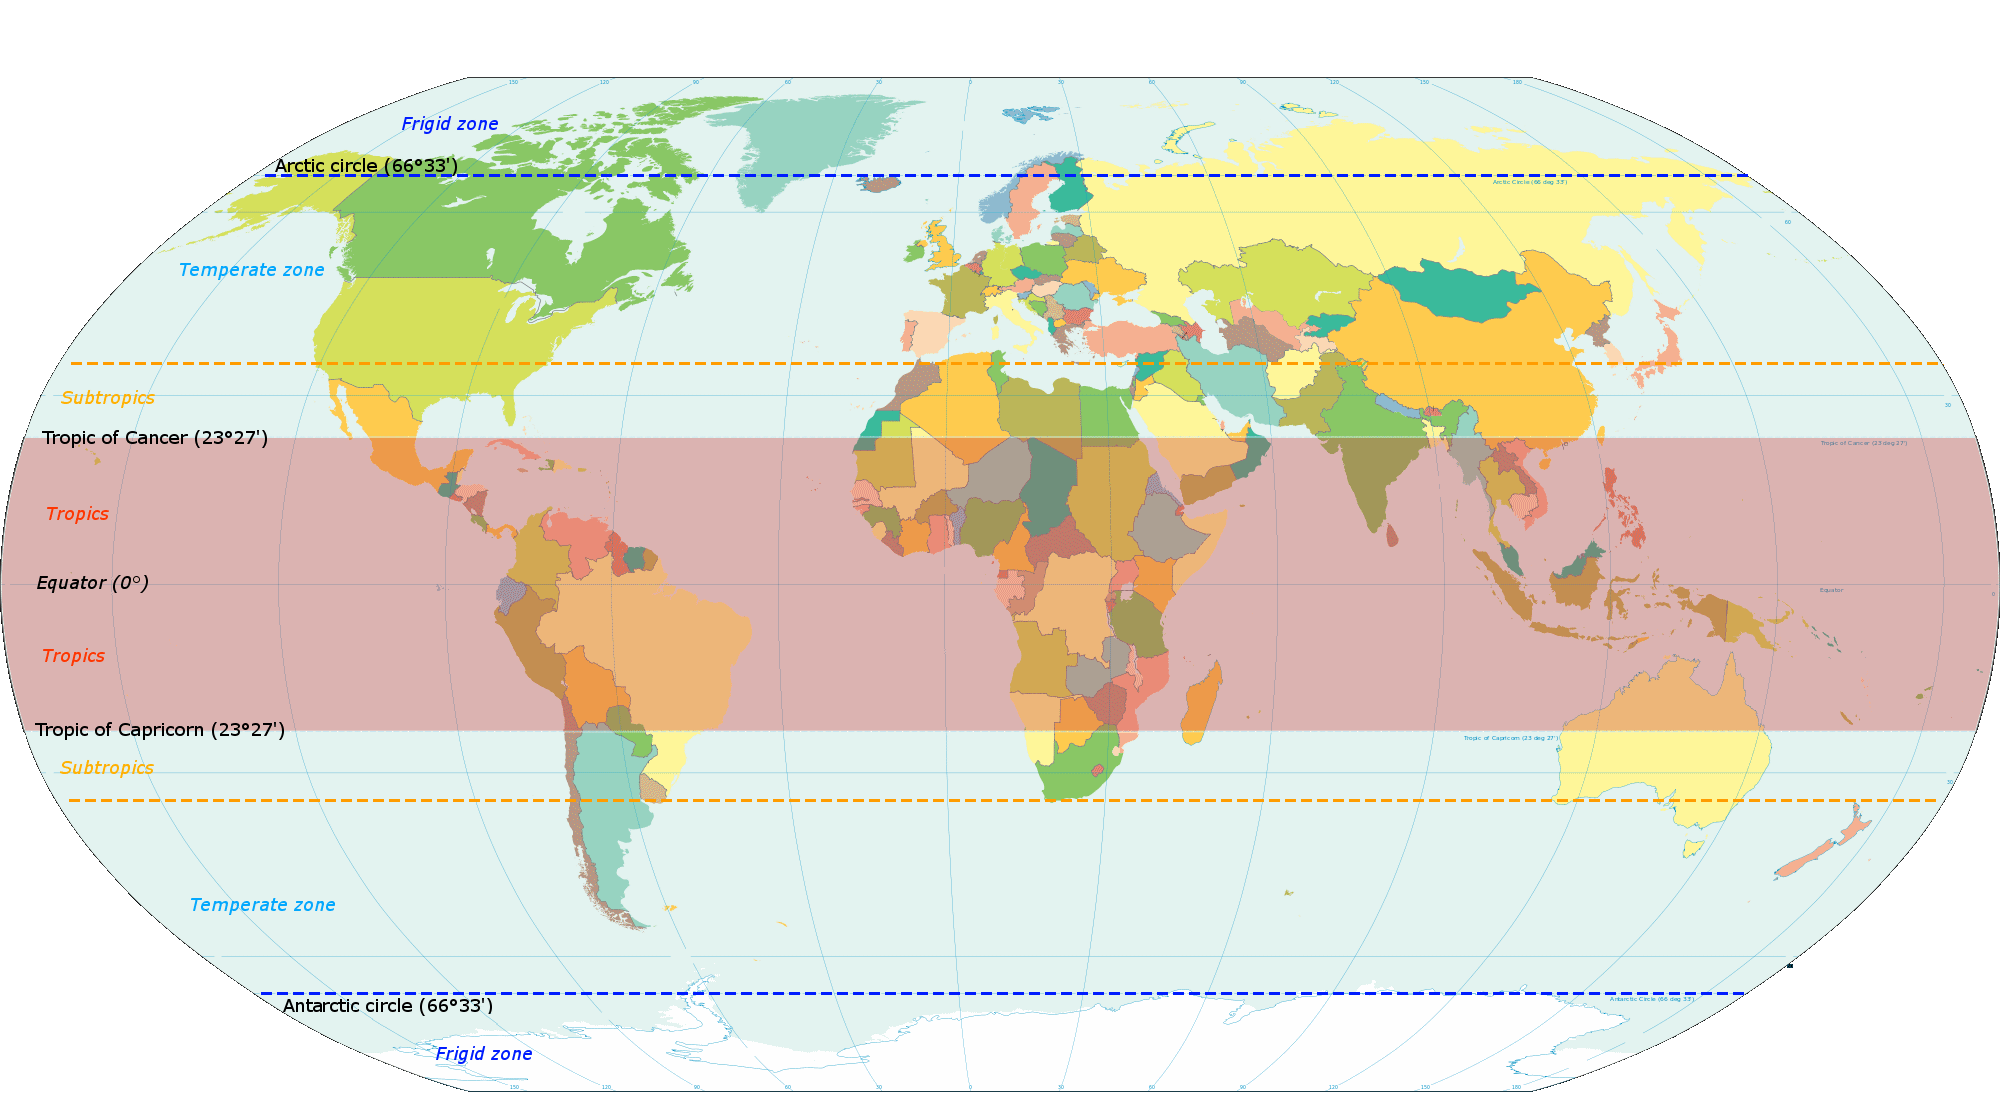 File:World map indicating tropics and subtropics.png   Wikimedia